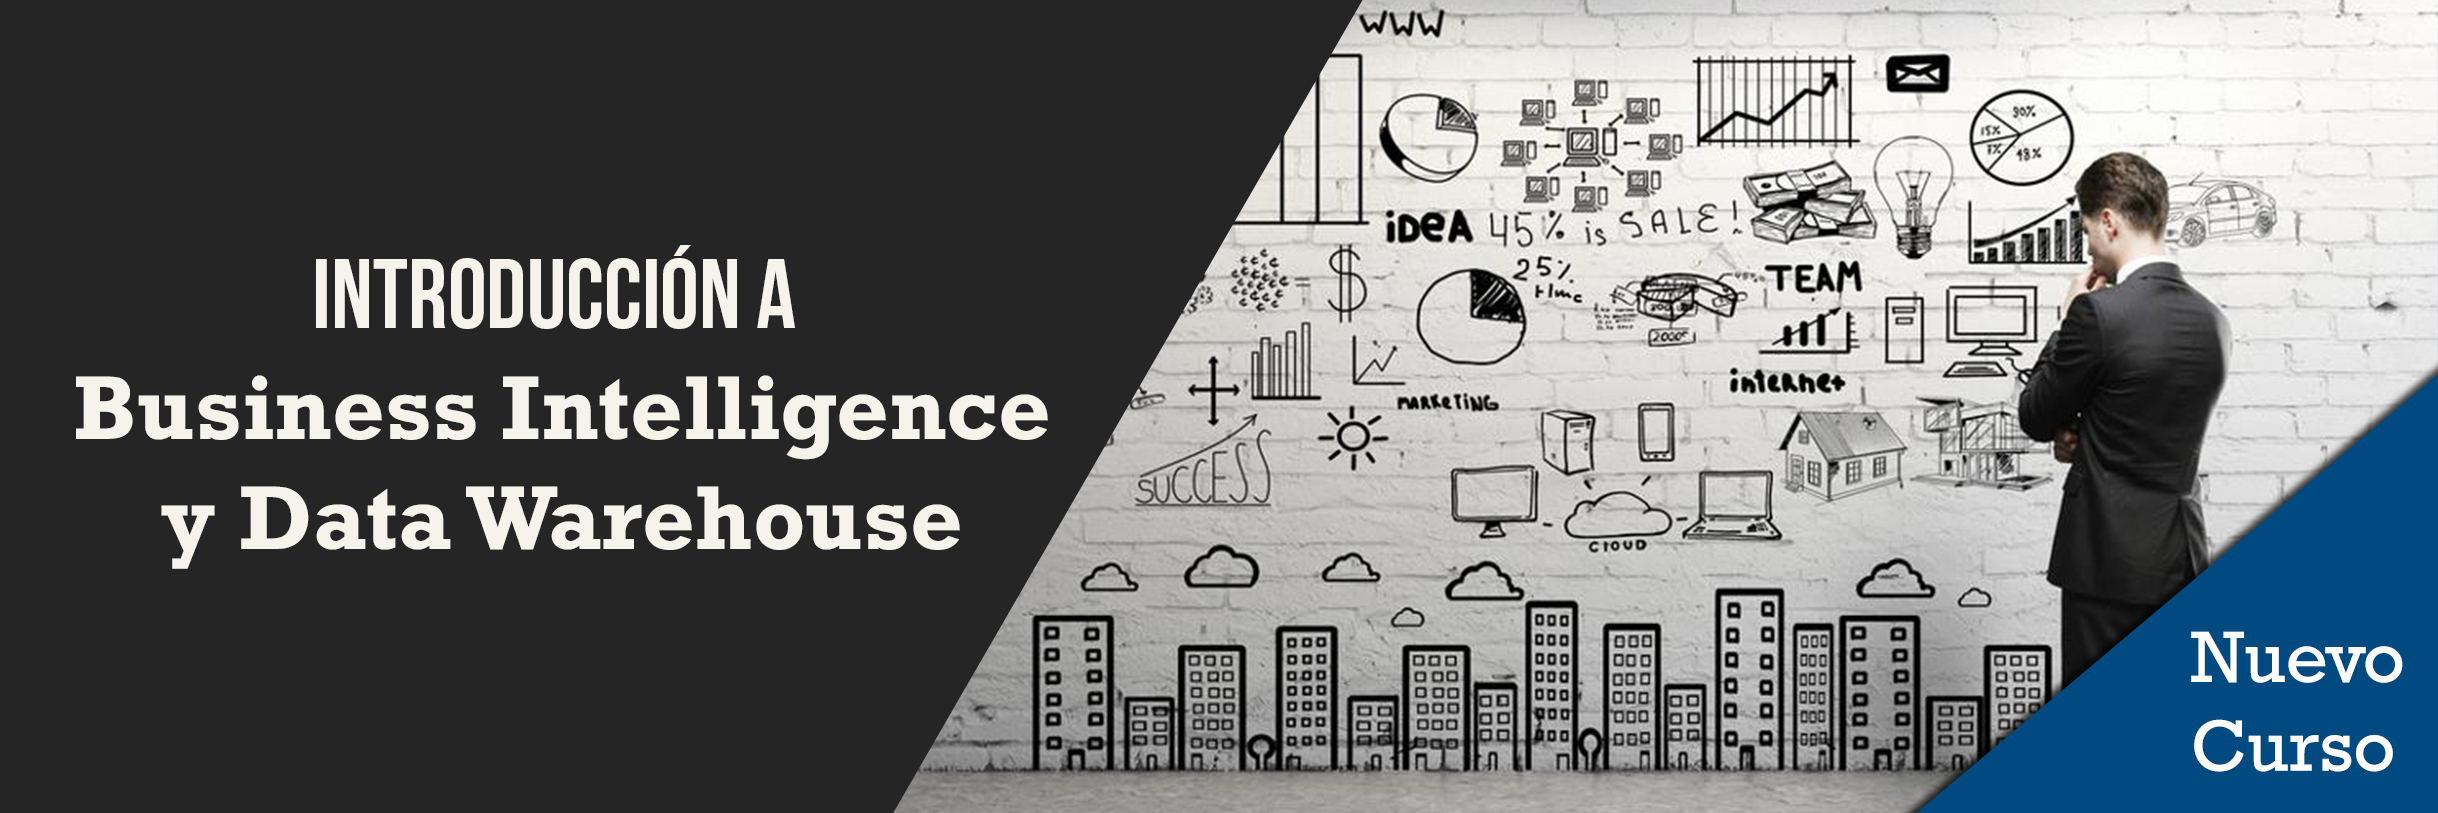 Bh introducci n  a business intelligence  y data warehouse